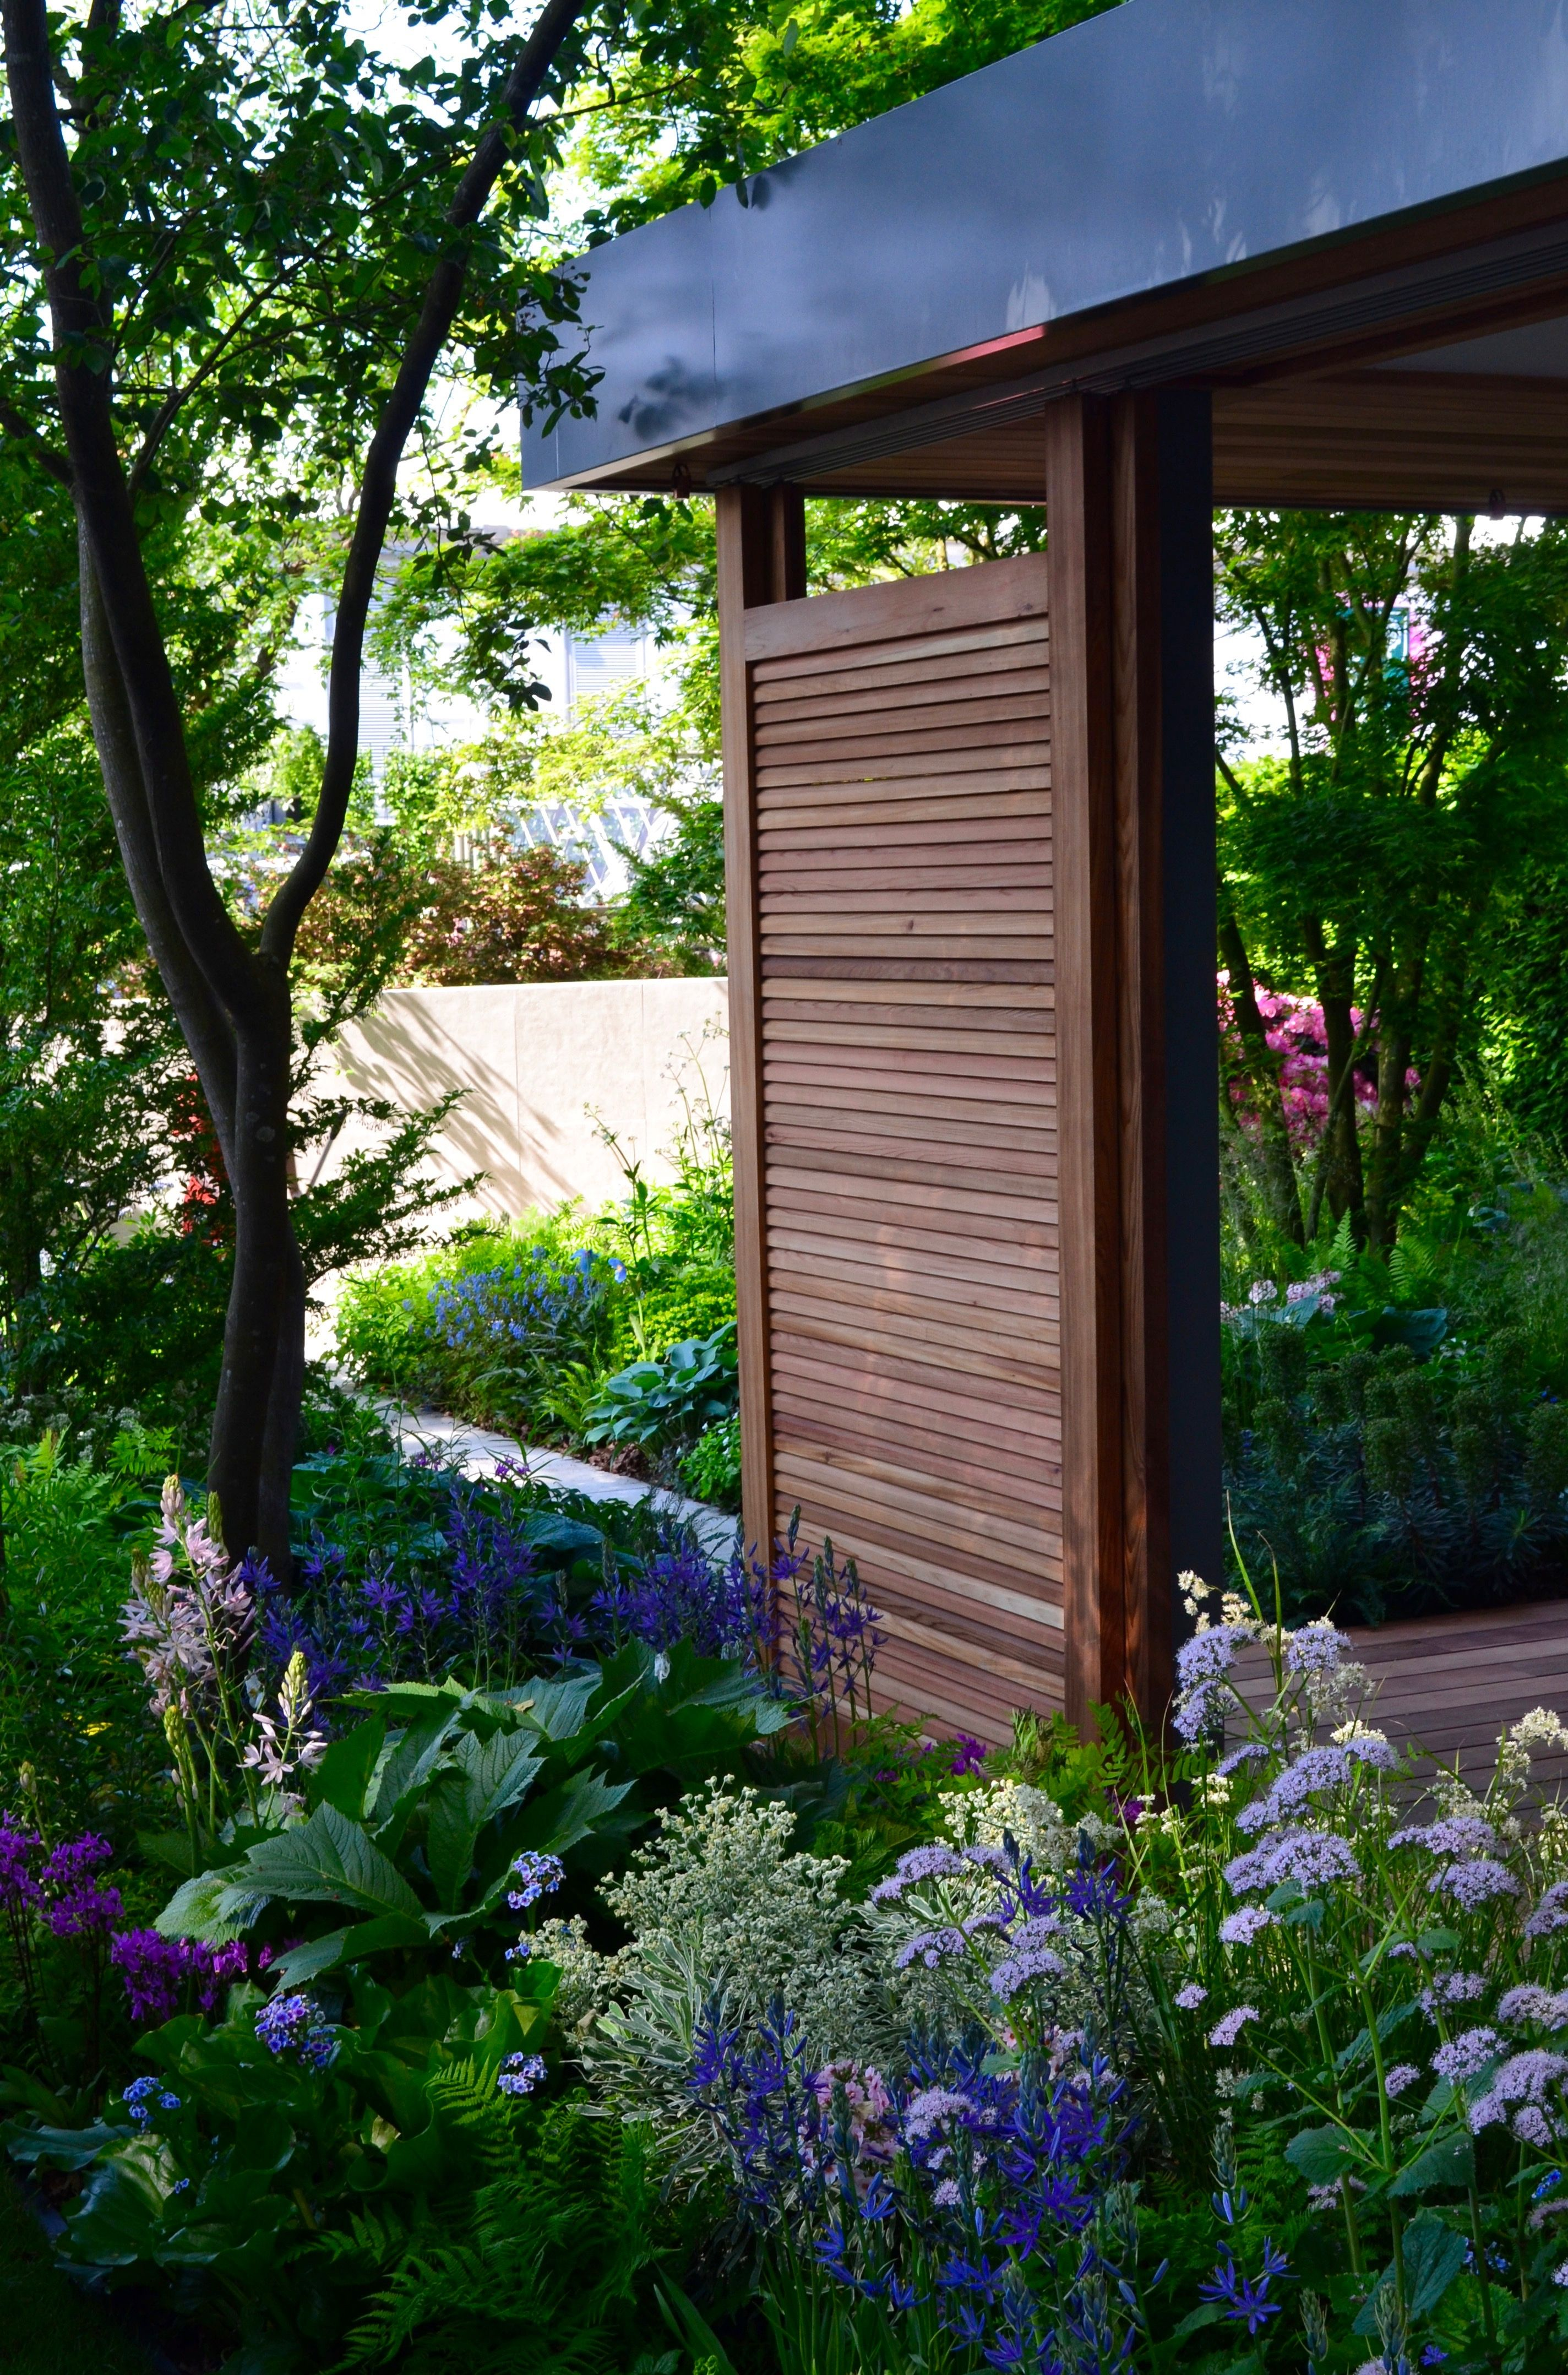 the best show garden award at the 2018 rhs chelsea flower show goes